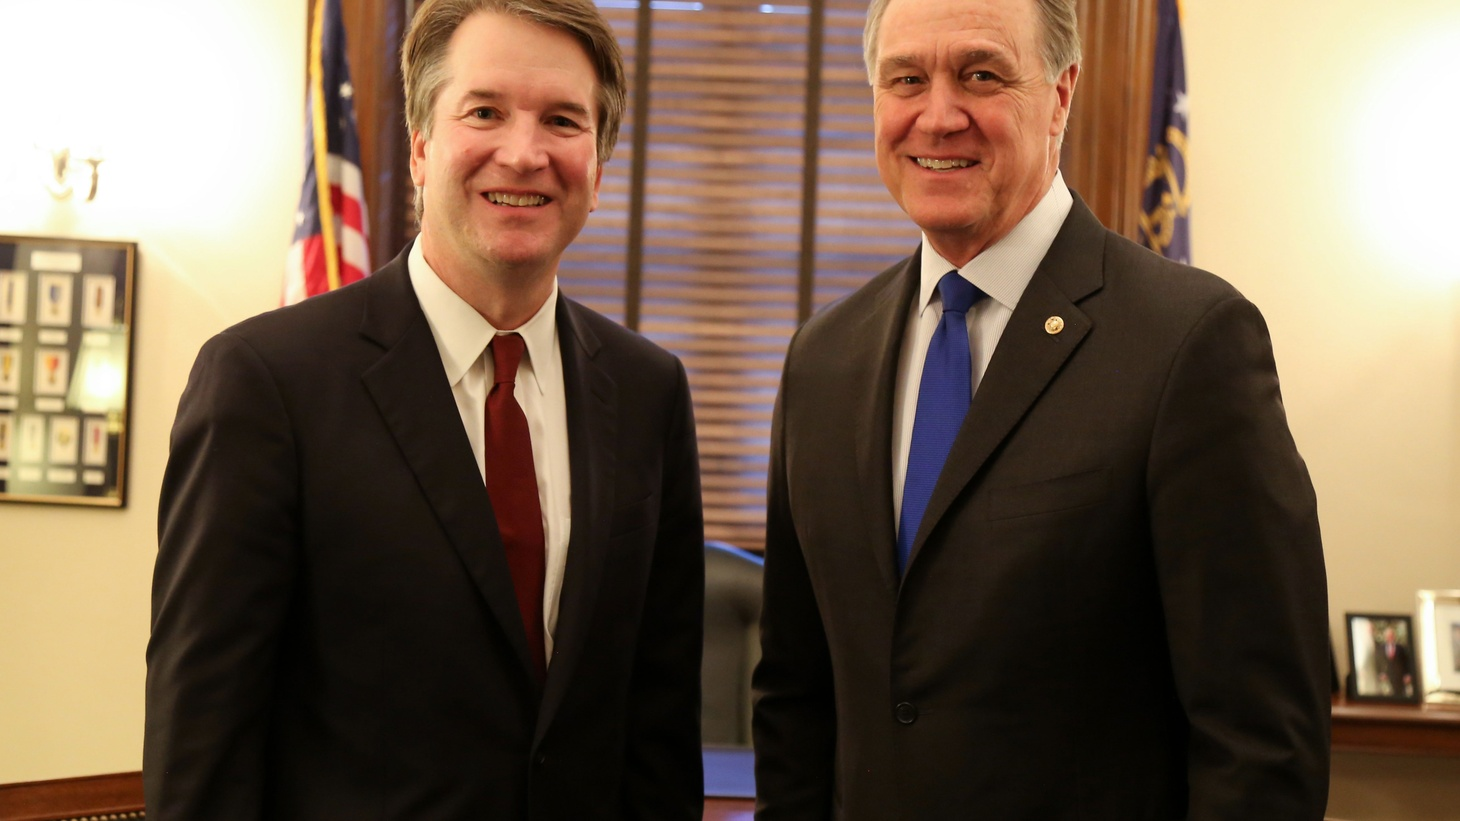 As the FBI looks into sexual assault allegations against Supreme Court nominee Brett Kavanaugh, the nation is starkly and bitterly divided over last week's hearings.